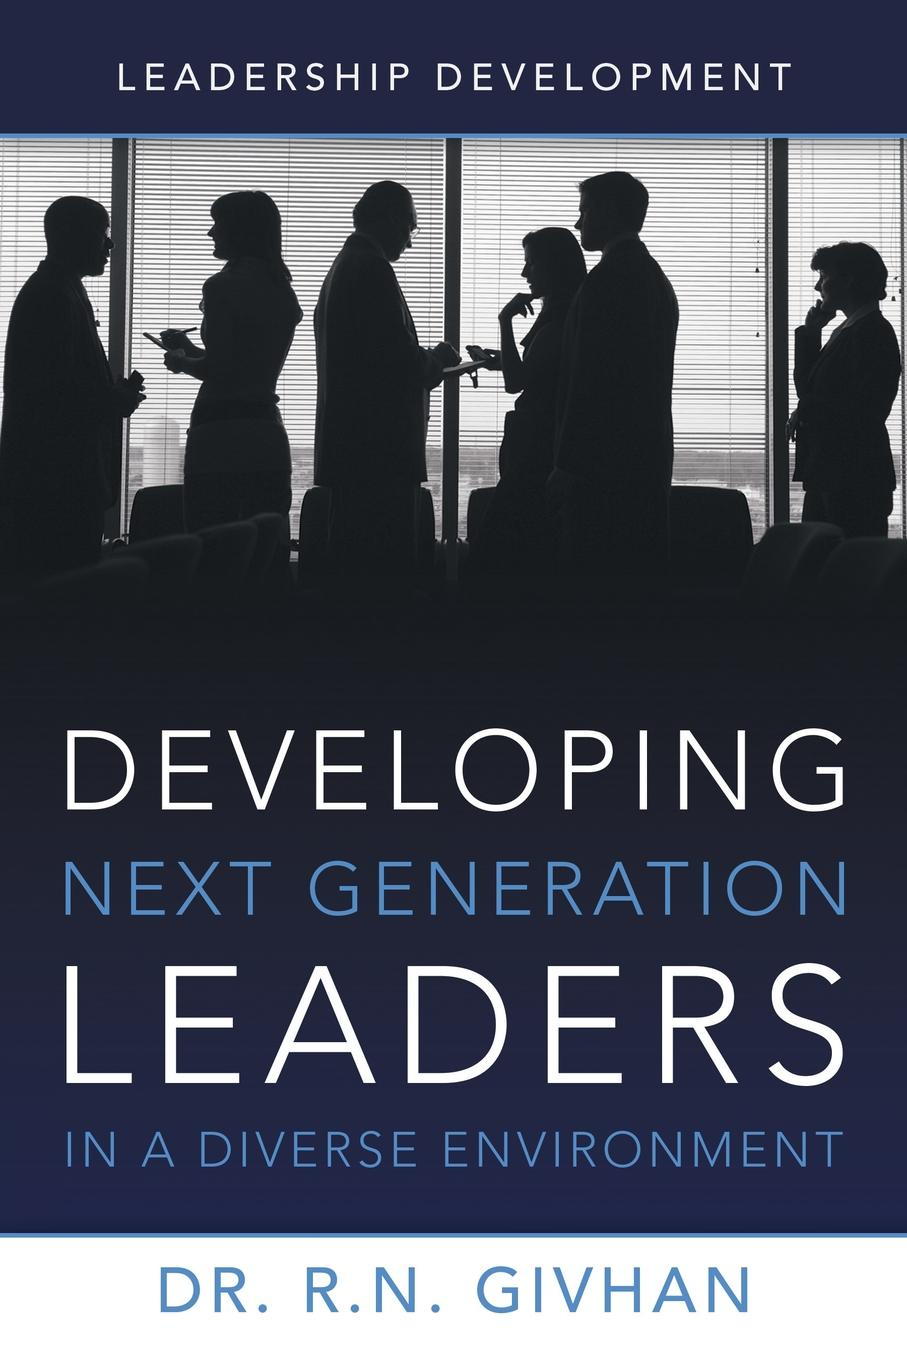 Dr R. N. Givhan Developing Next Generation Leaders in a Diverse Environment. Leadership Development leaders